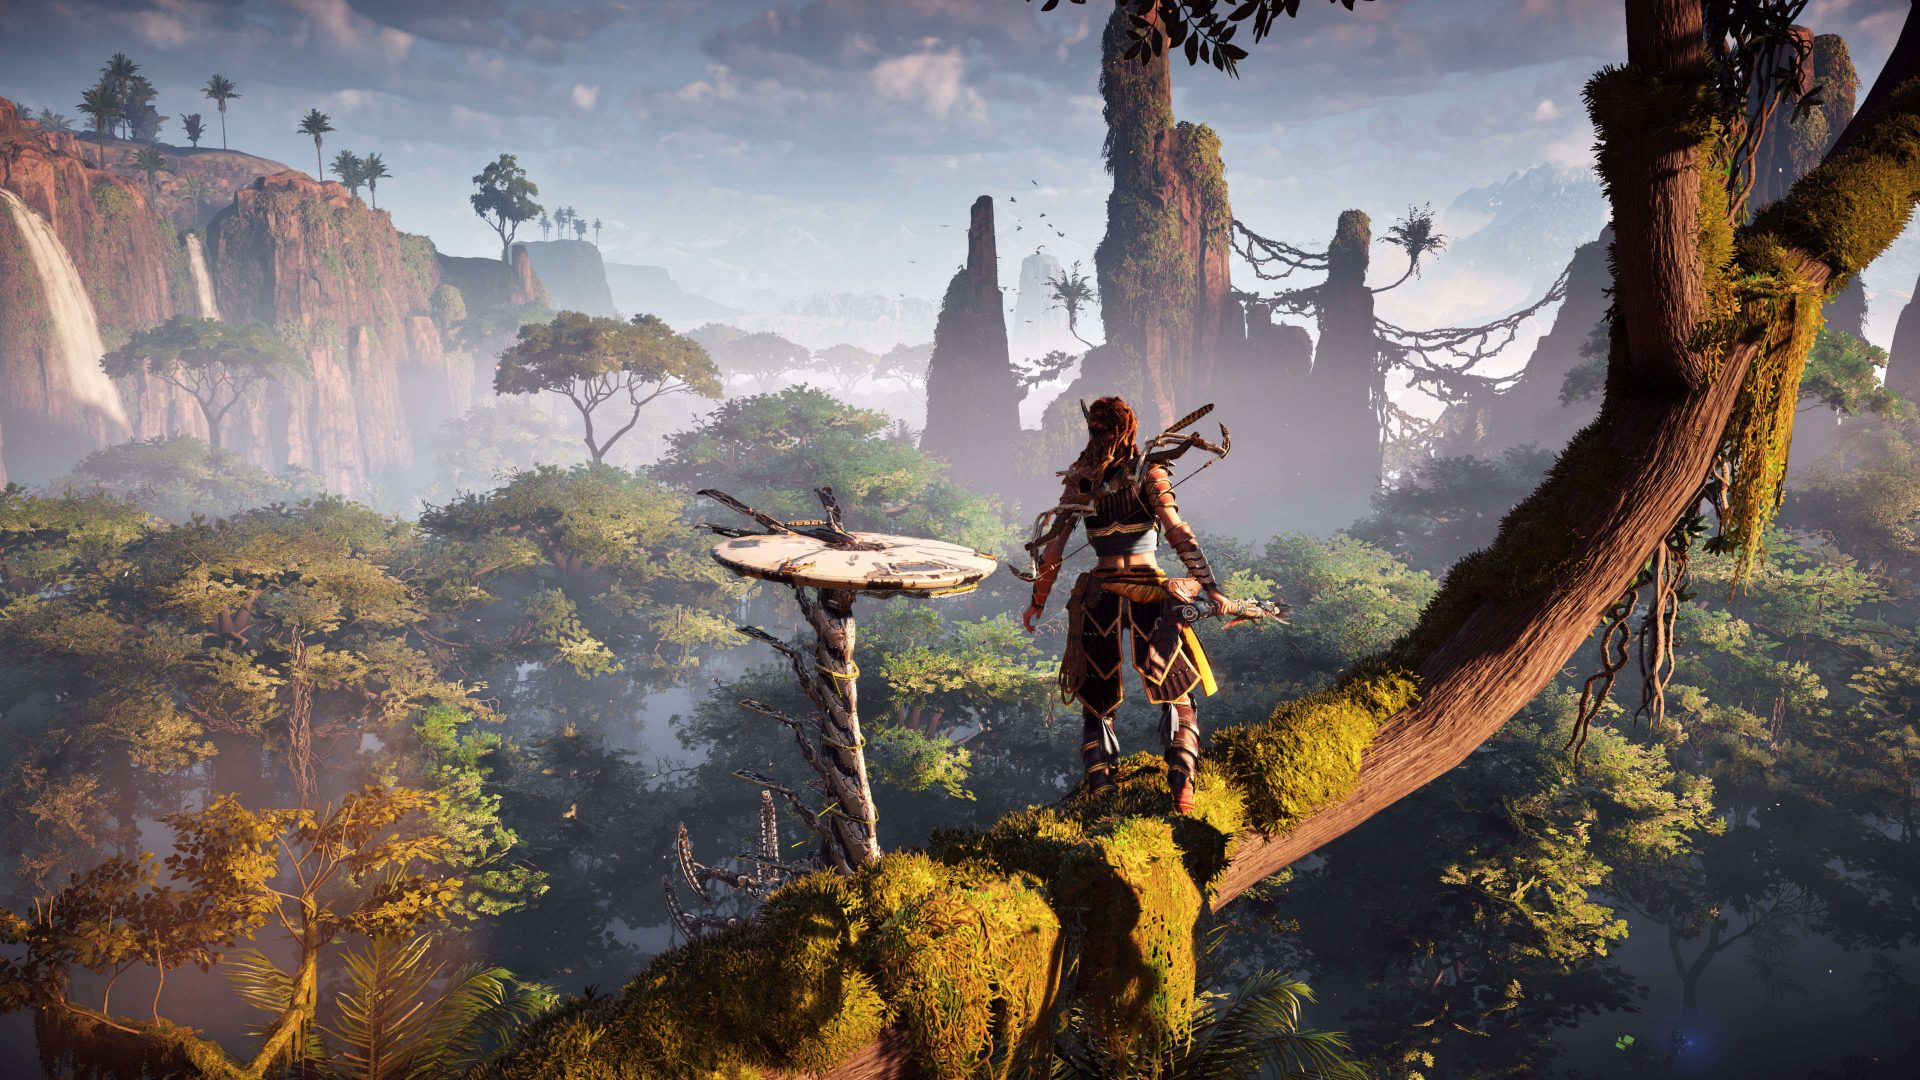 In Horizon: Zero Dawn, use Aloy's focus ability to identify weak spots on enemies.